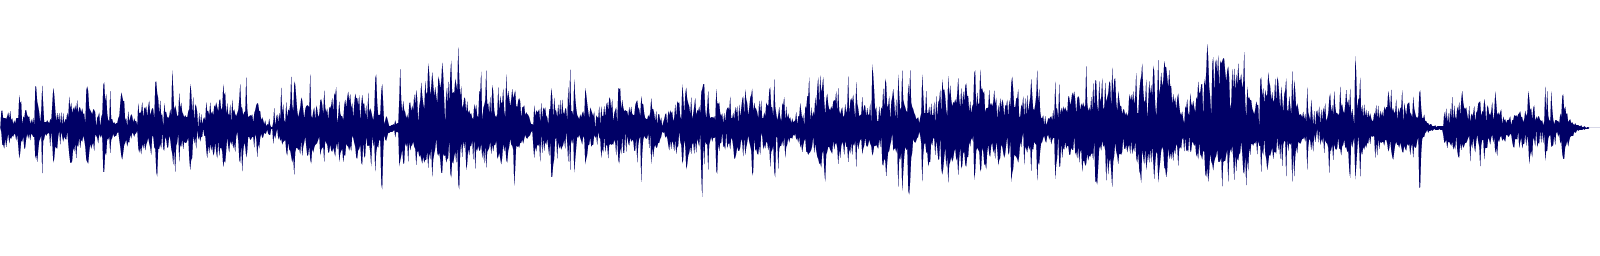 waveform of track #99486